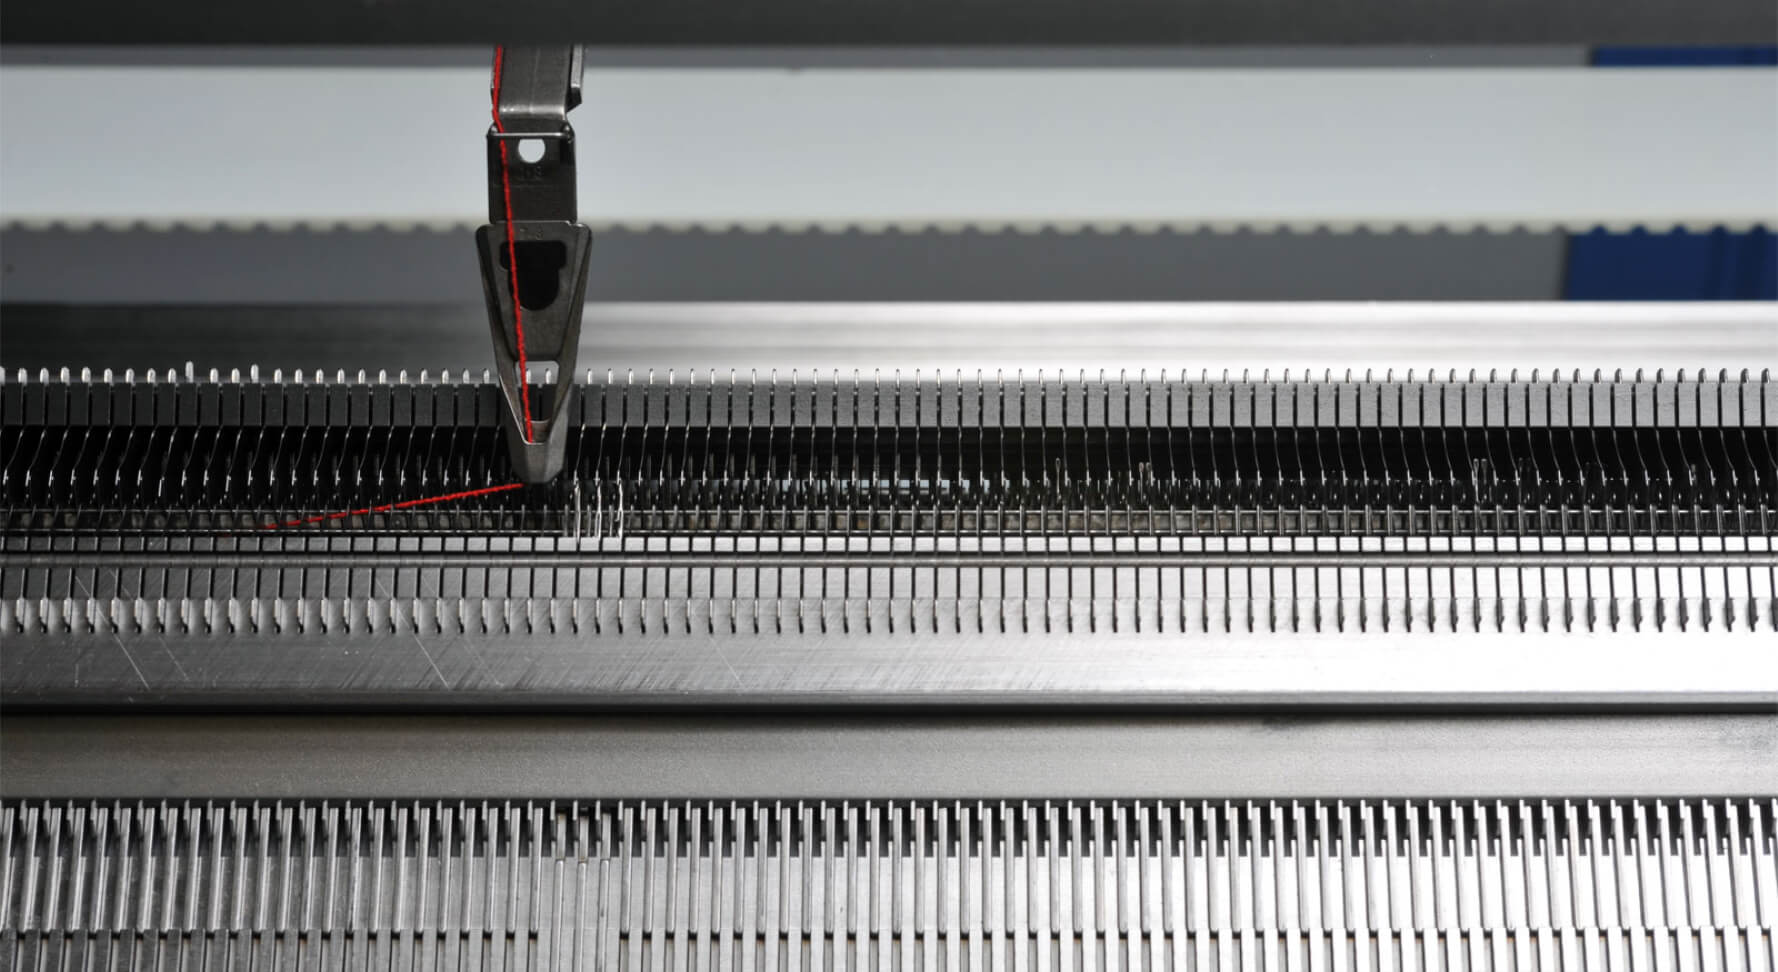 Flat knitting machine with yarn carrier. One read thread is being knitted.